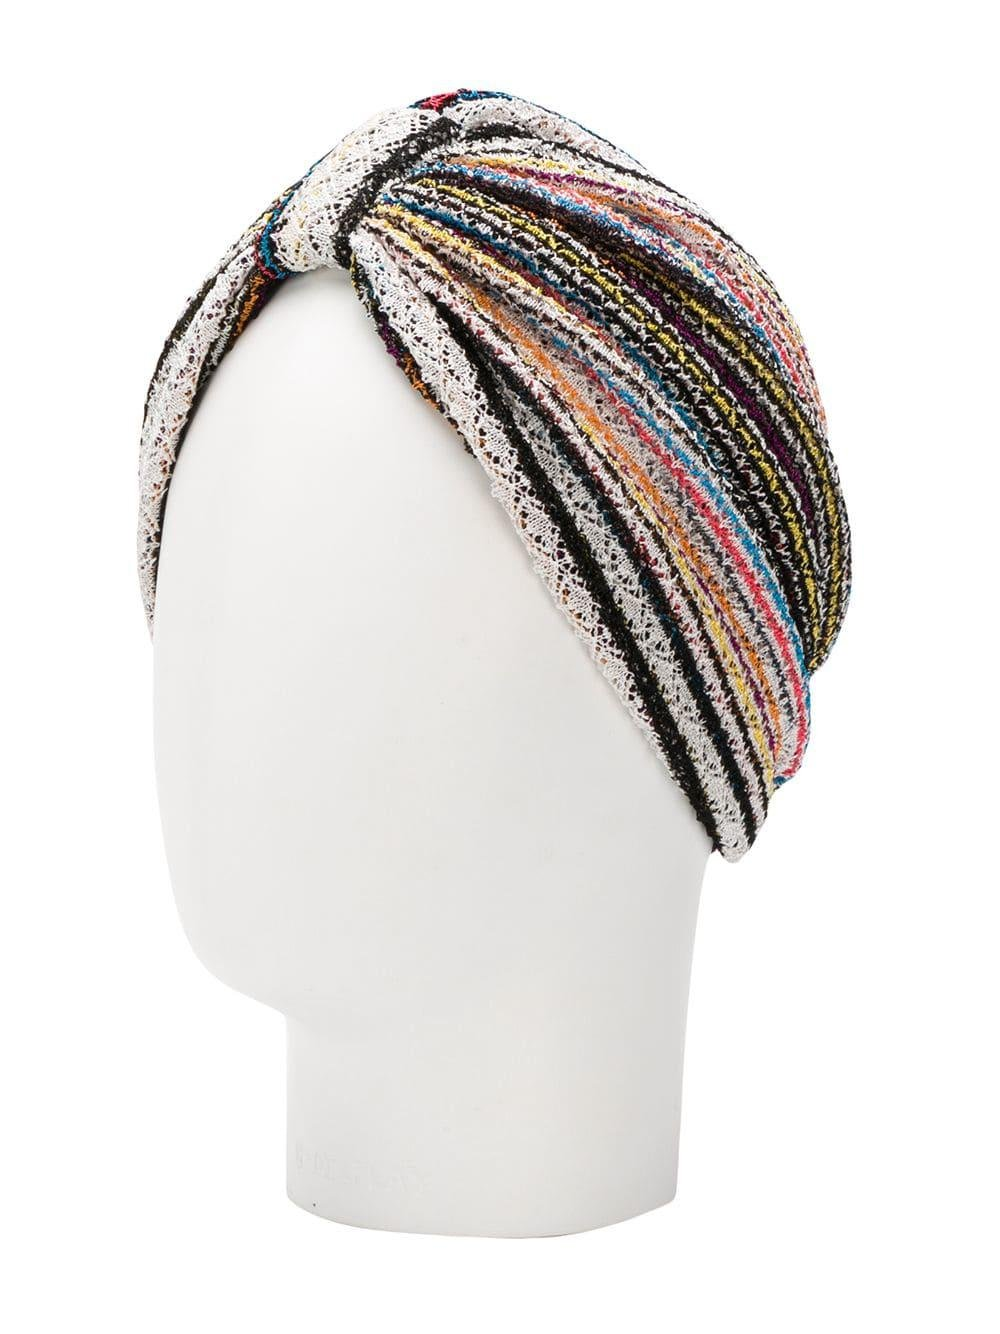 20771e46af9 Missoni - Blue Knitted Turban - Lyst. View fullscreen